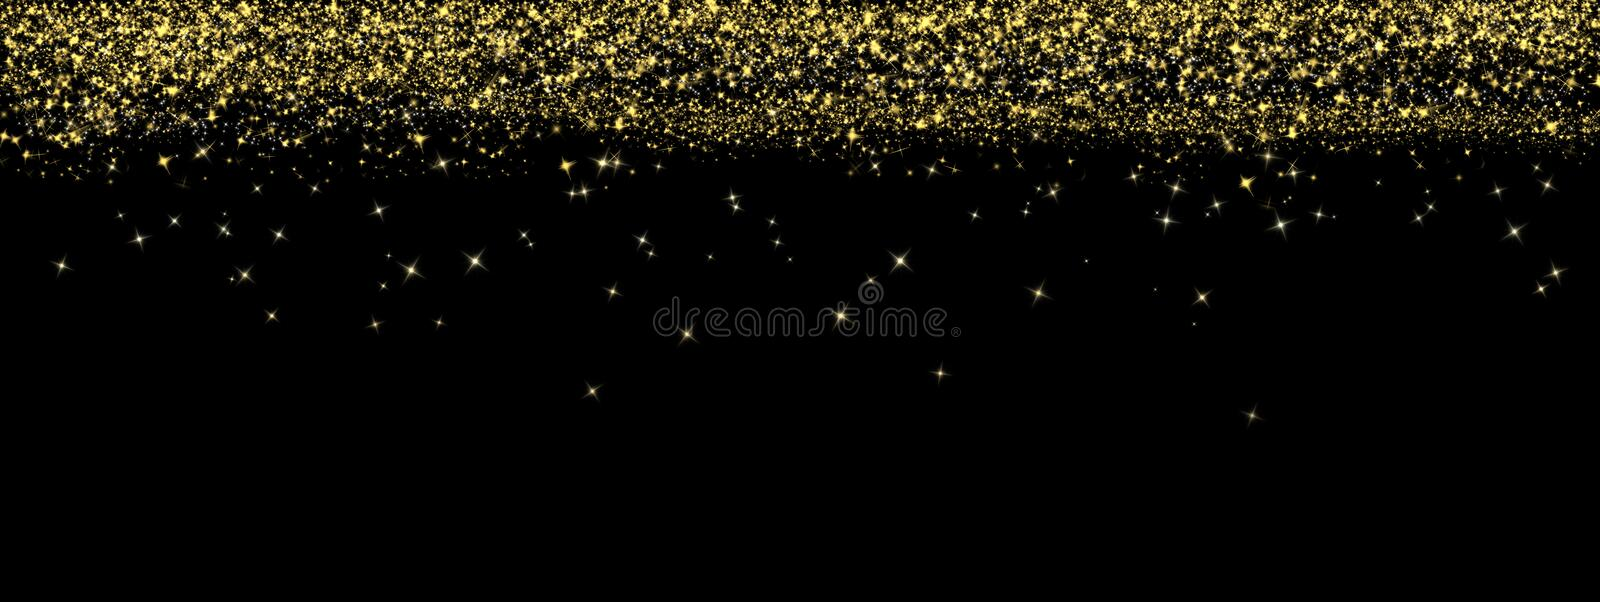 Abstract Bright Golden Glitters Falling in Dark Background Banner stock image